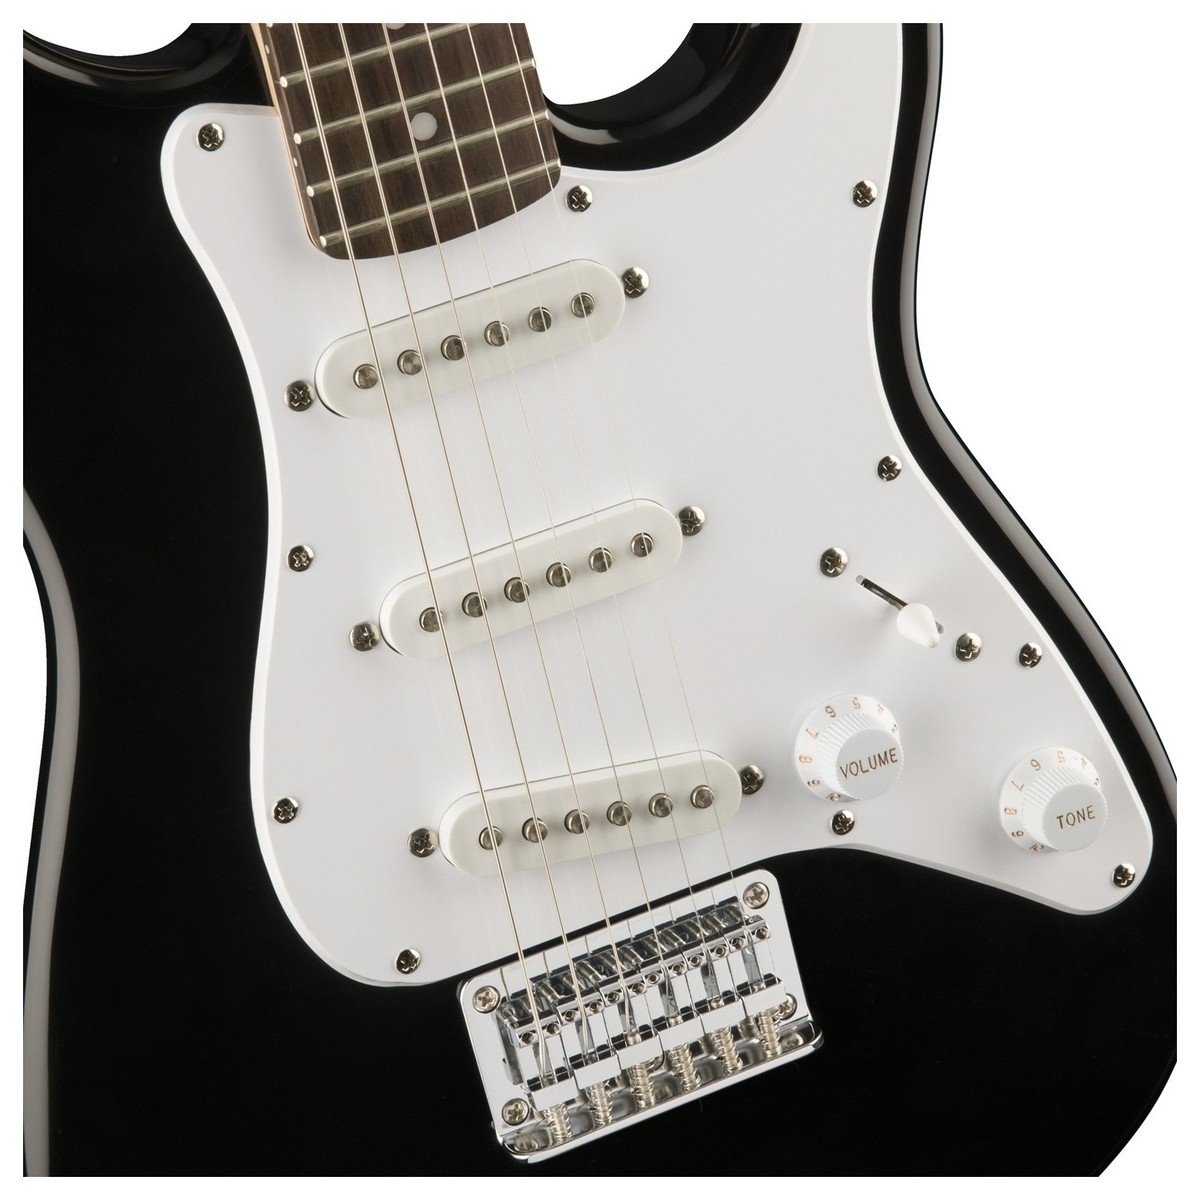 squier by fender mini stratocaster 3 4 size electric guitar black box opened at gear4music. Black Bedroom Furniture Sets. Home Design Ideas